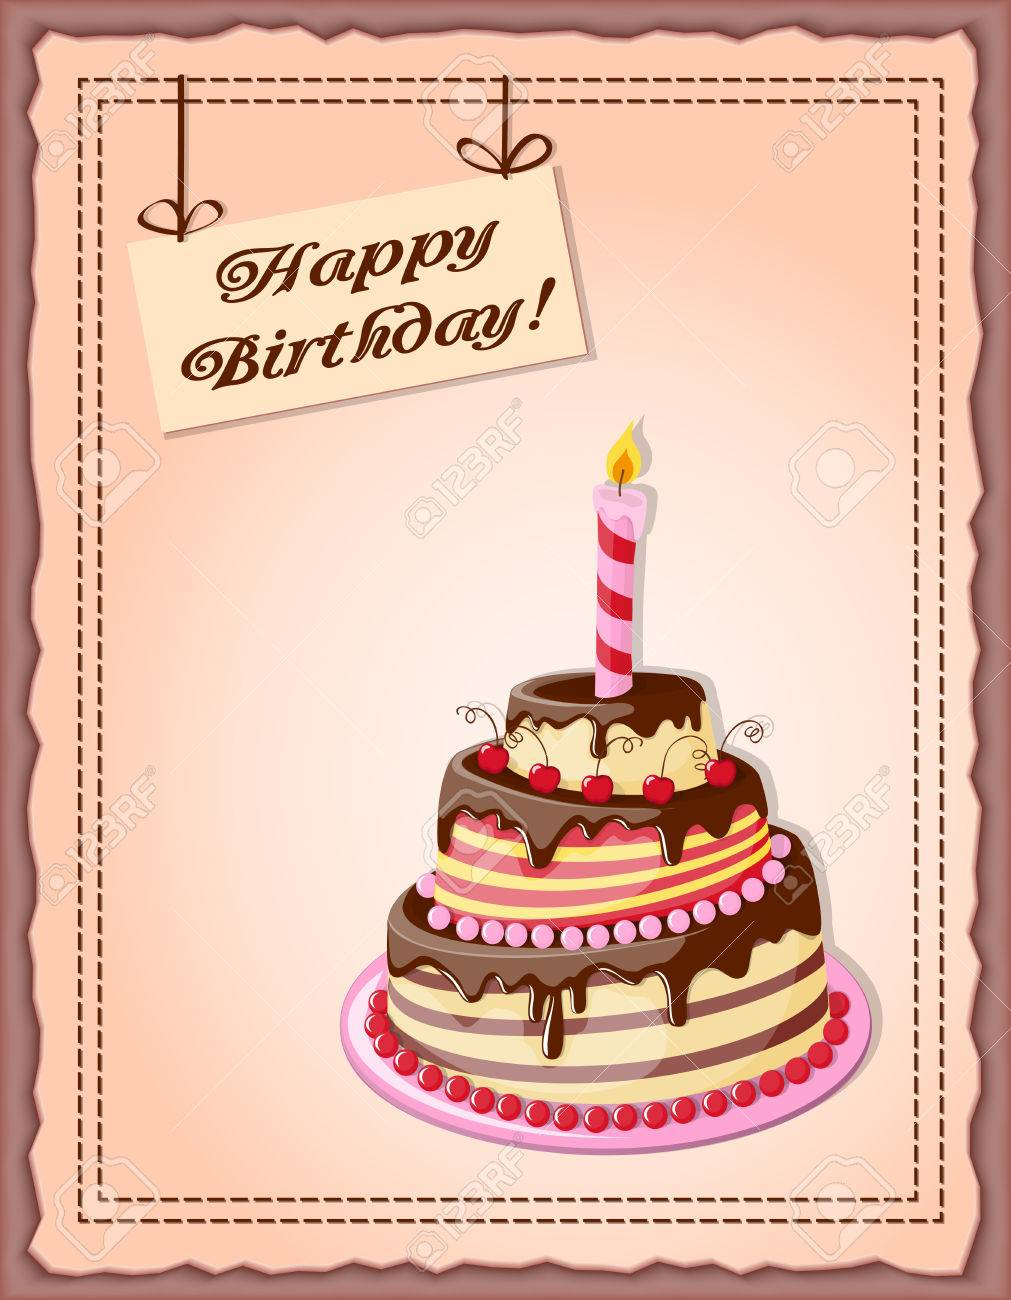 Festive Colorful Card With Text Happy Birthday Cake Tier